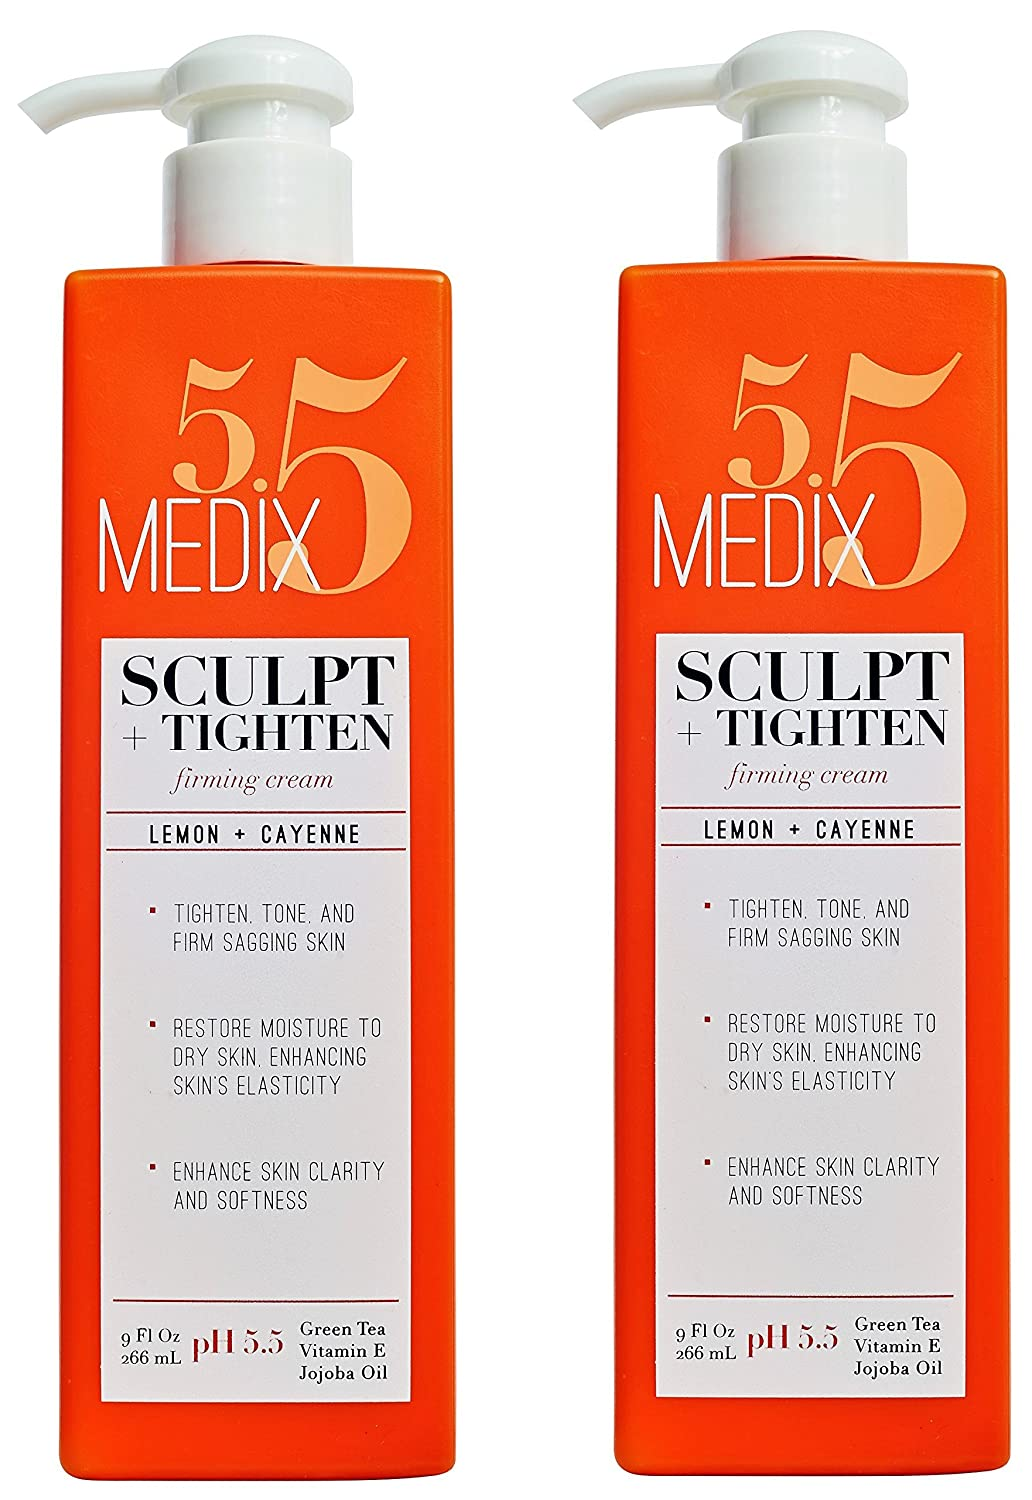 8f664bbca9d Amazon.com: Medix 5.5 Firming Cream with Vitamin E, Jojoba Oil, Green Tea.  Sculpt + Tighten Cream for sagging skin. (Two - 9oz): Beauty